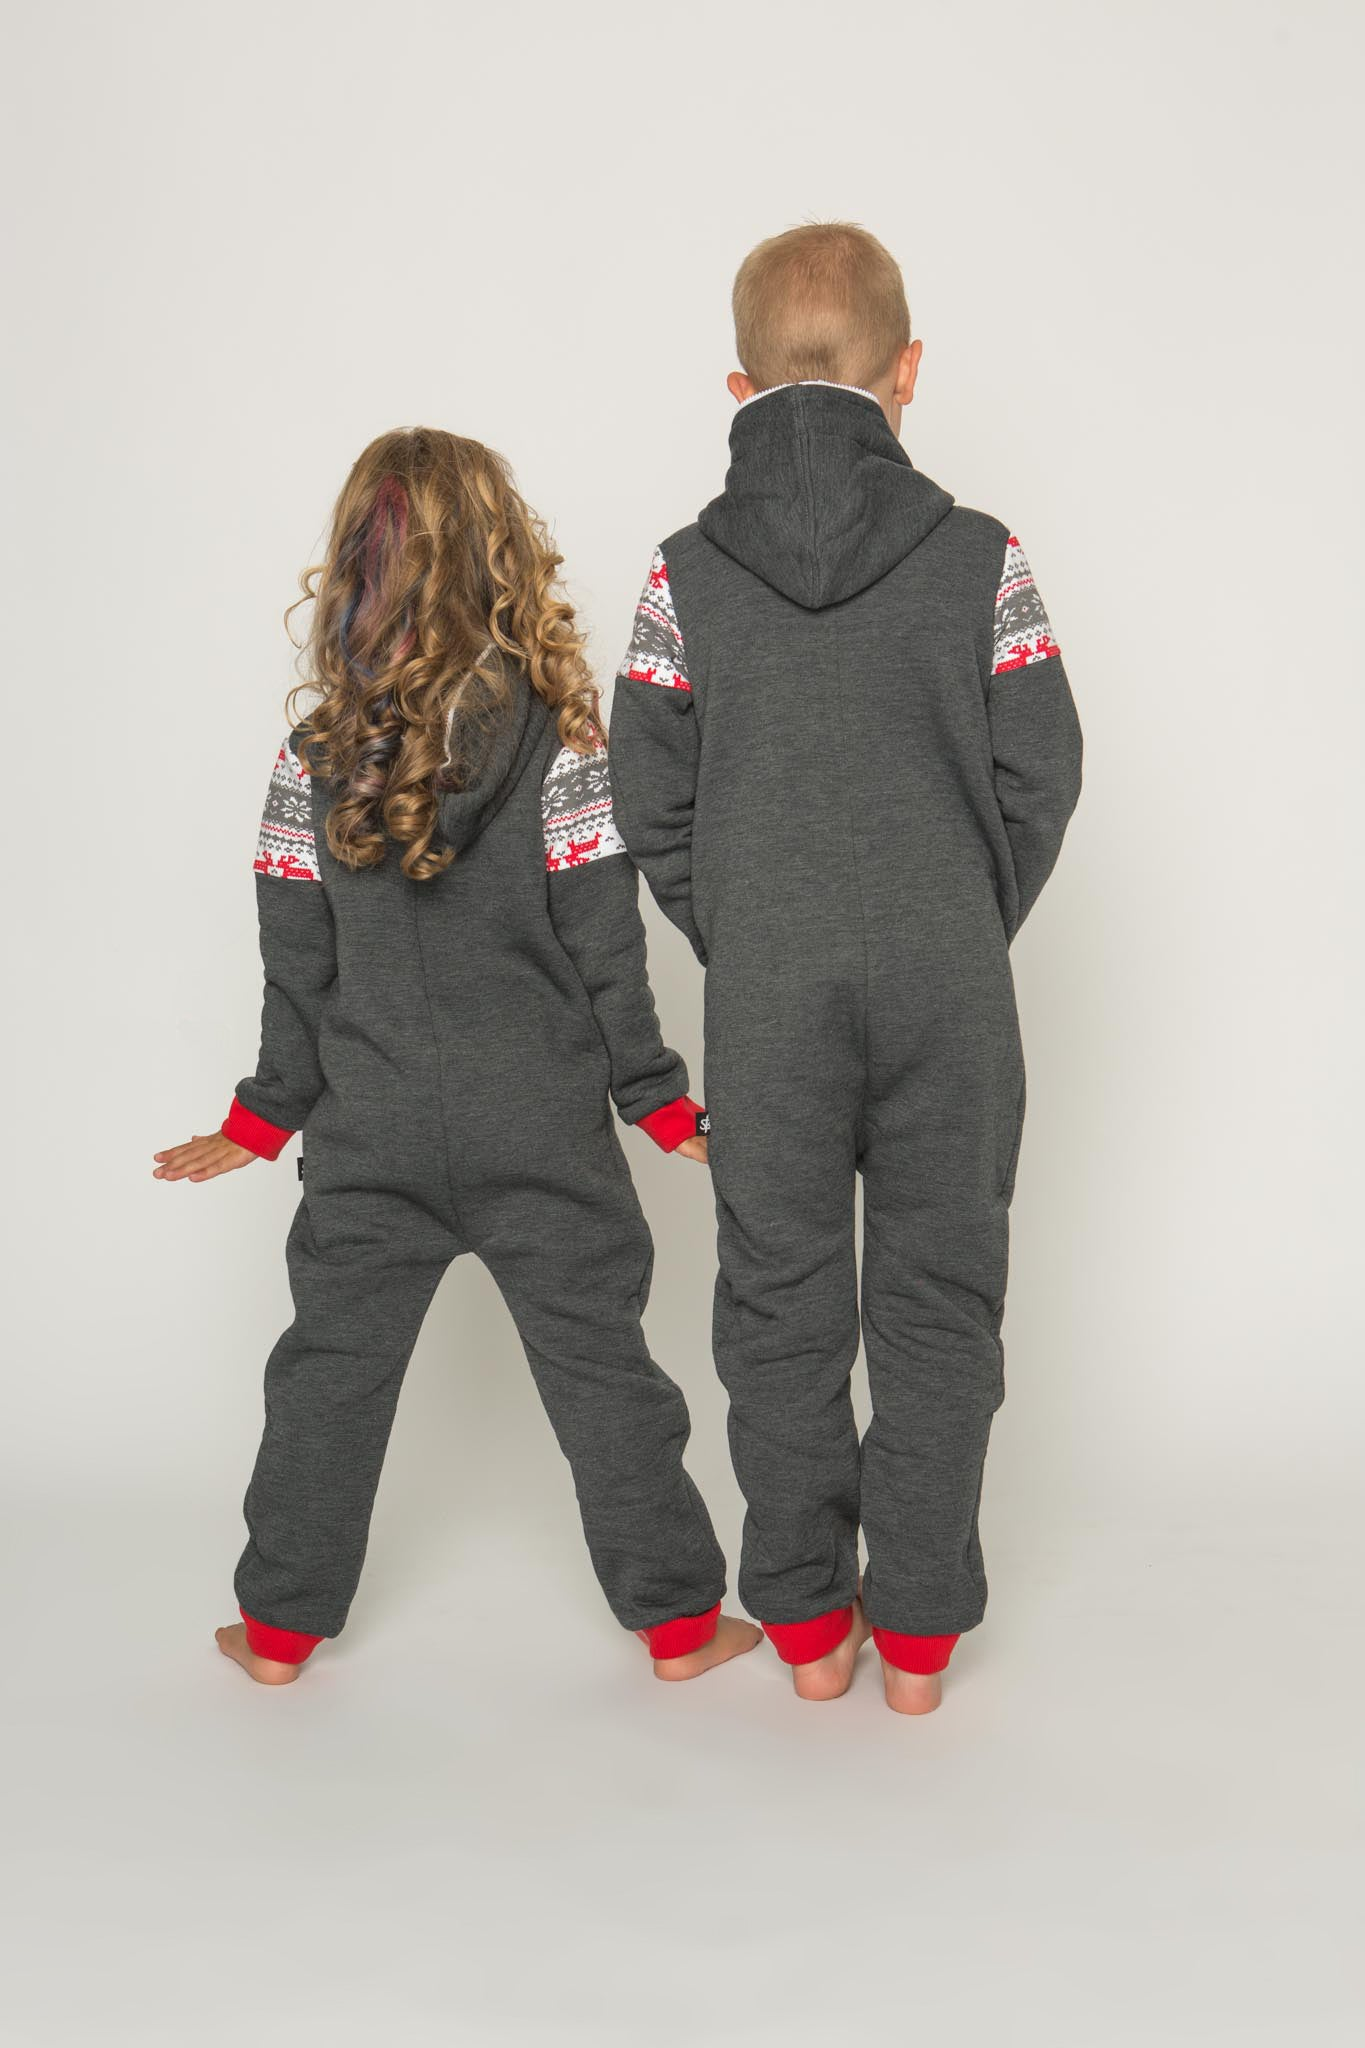 Sofa Killer dark grey unisex kids onesie Nordic